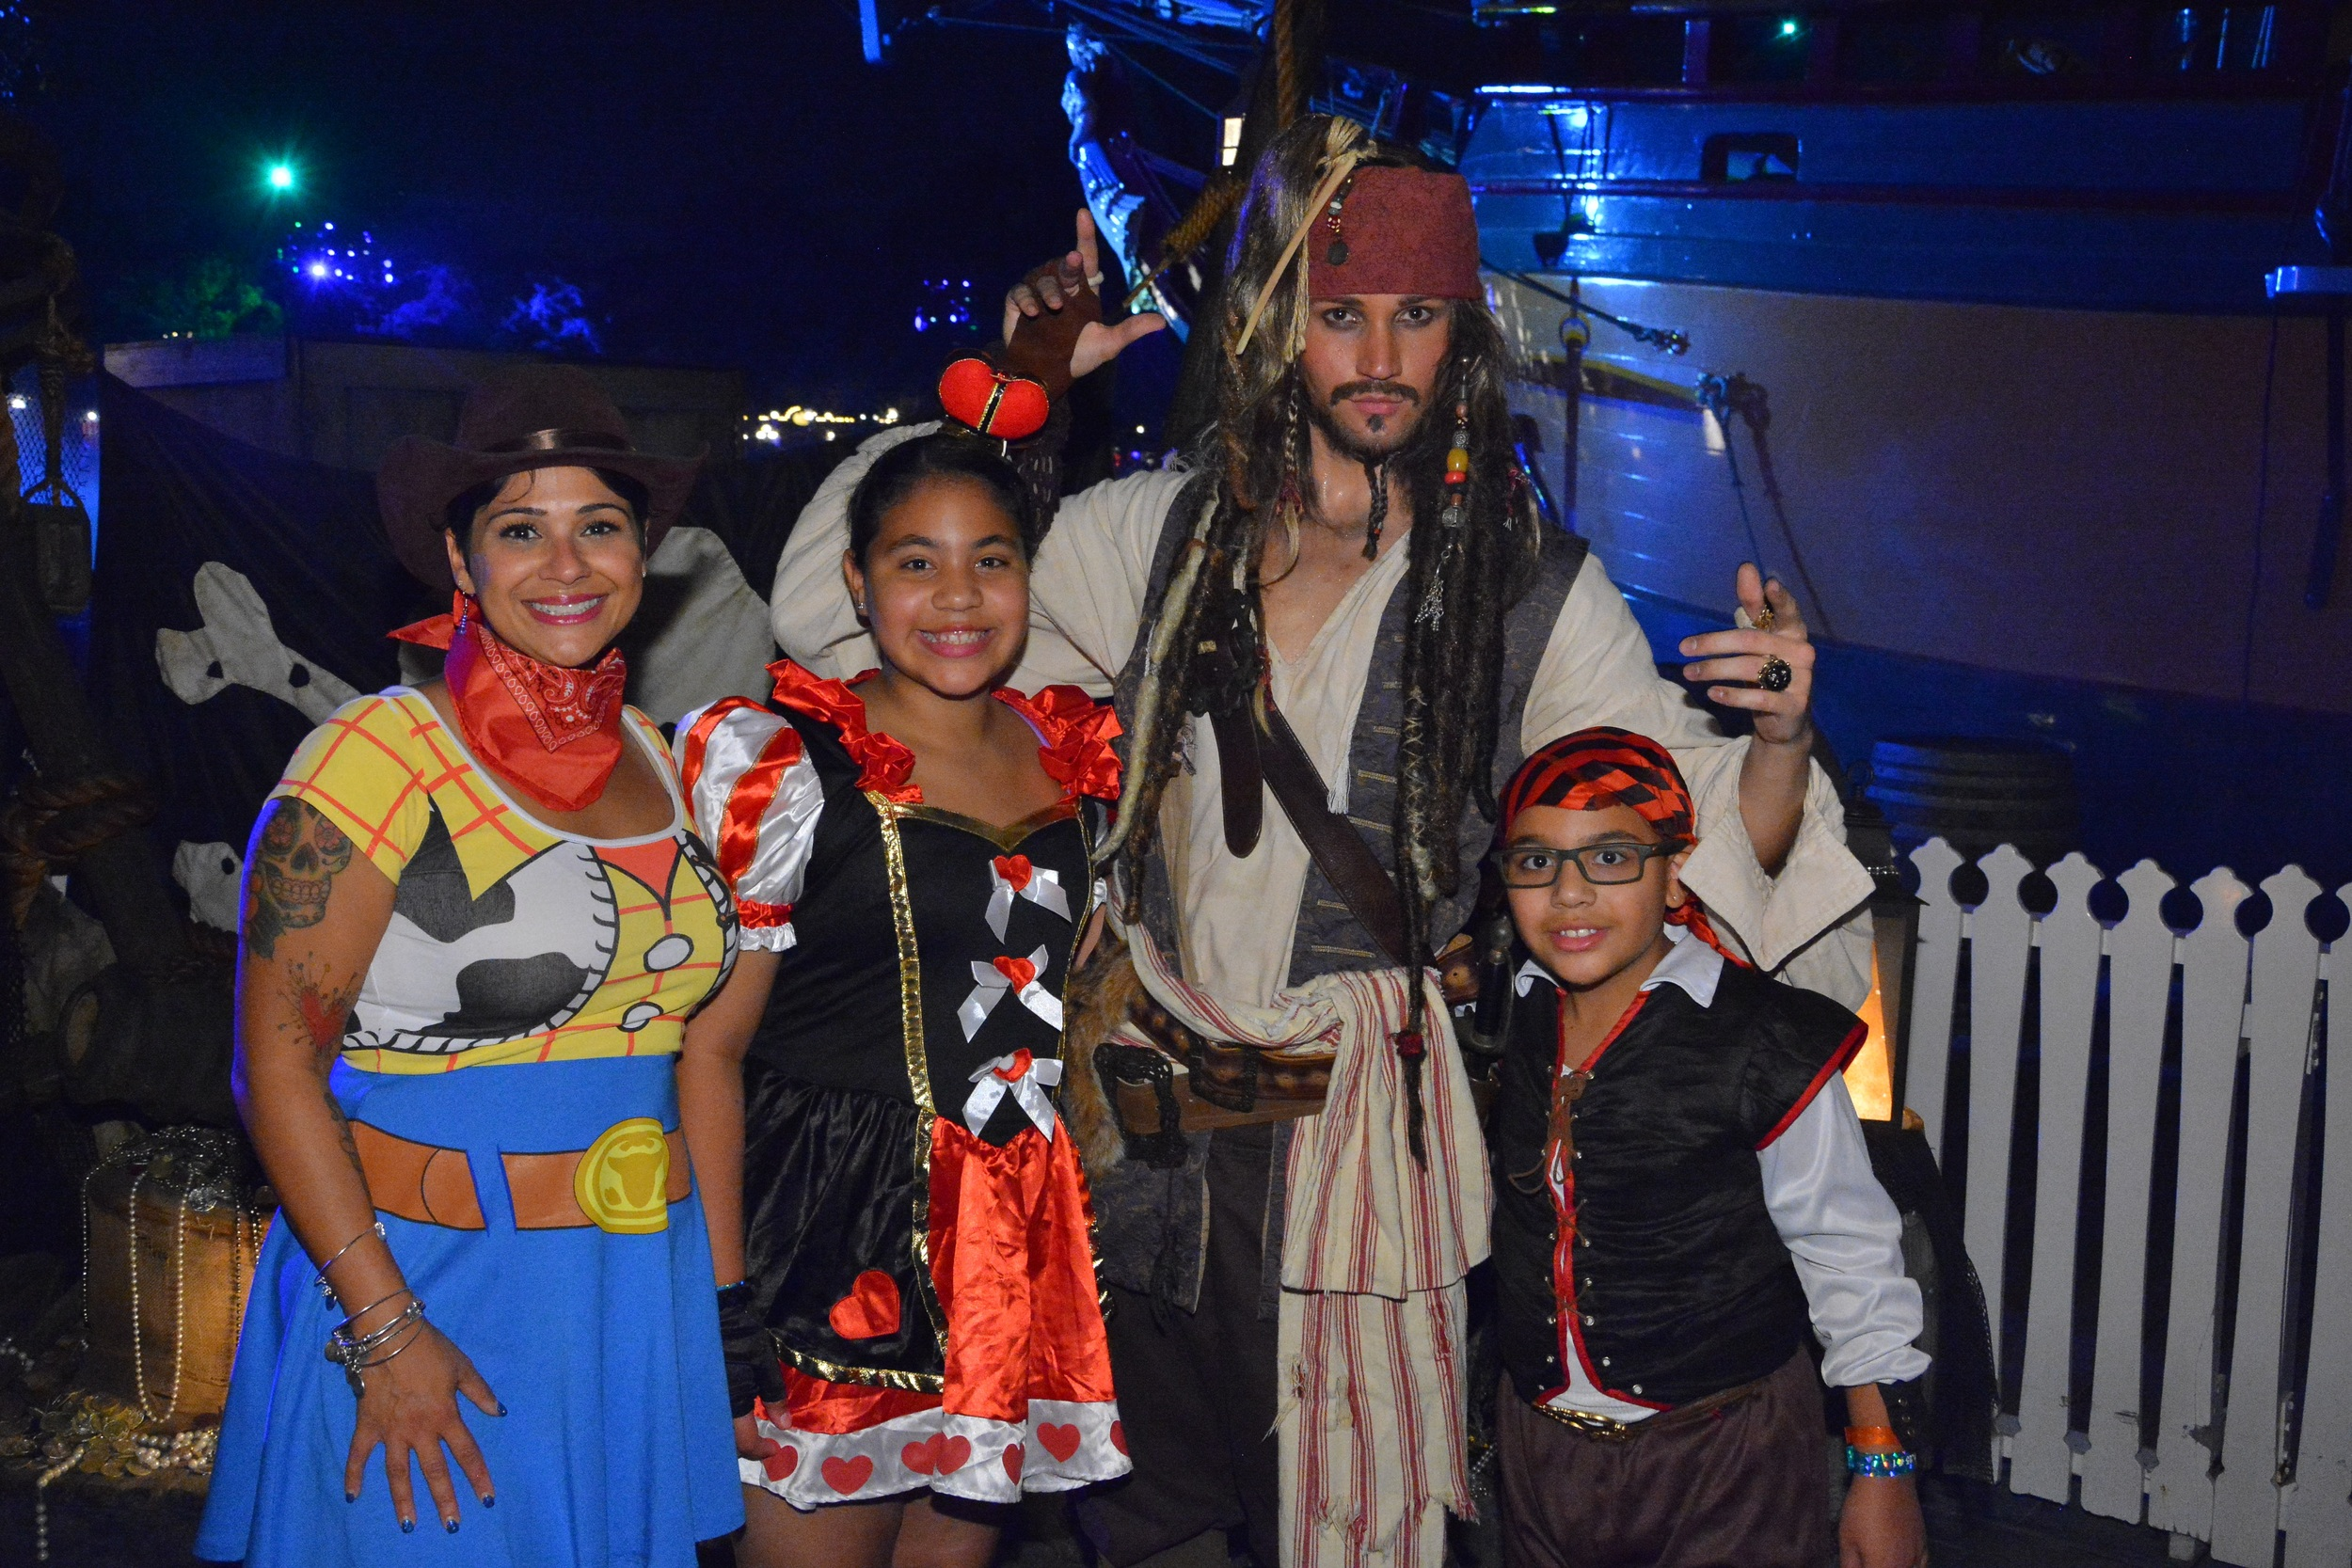 Ernesto was THRILLED to meet the one and only Captain Jack Sparrow